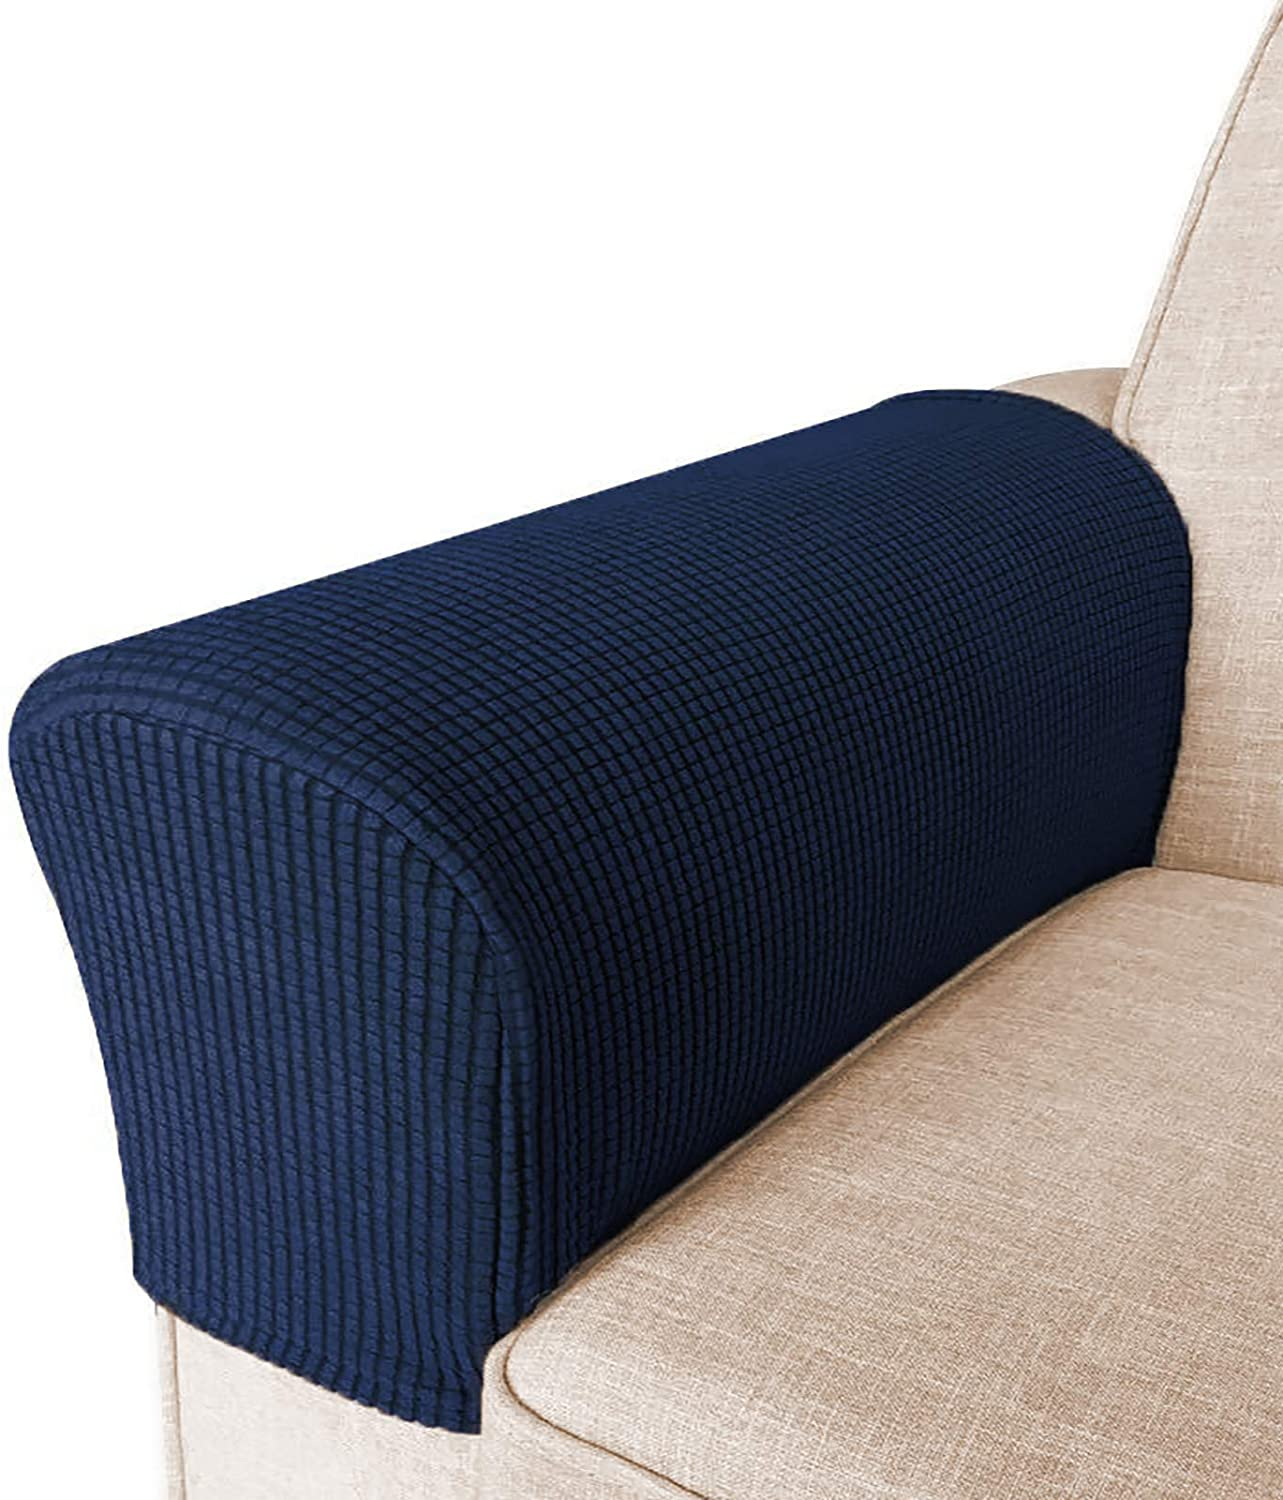 High Stretch Armrest Covers for Chairs and Sofas Spandex Jacquard Fabric Small Checks Armchair Covers for Arms Couch Arm Covers Armrest Covers for Sofa/Recliner Non Slip, Set of 2, Navy